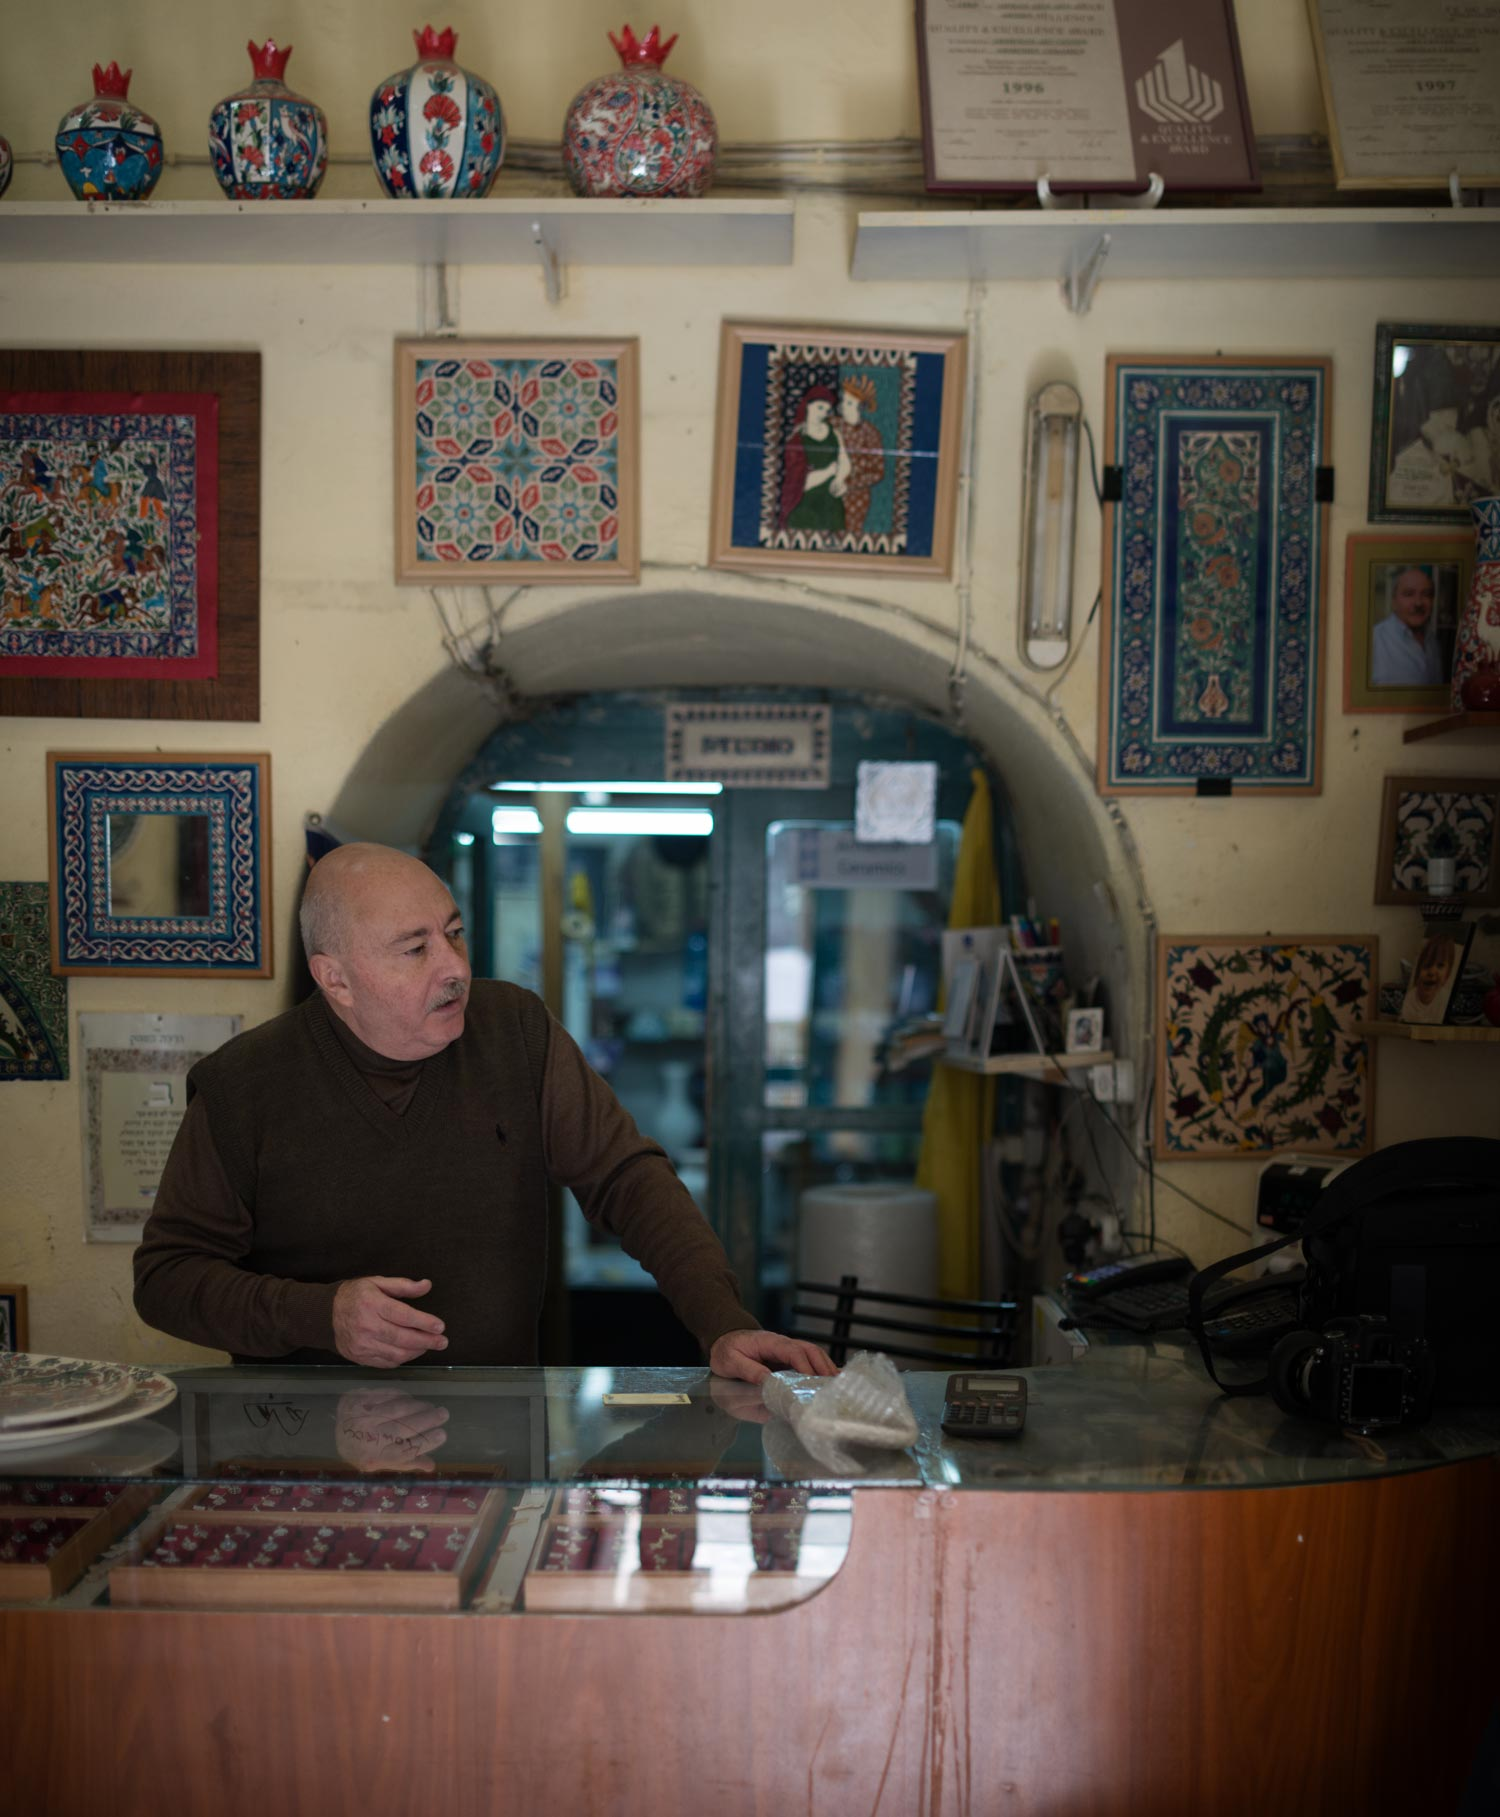 This Armenian shop owner told us about how his people are being driven from Israel. Once in history they outnumbered Jews and Muslims alike. Now there are only a few hundred left in the city.